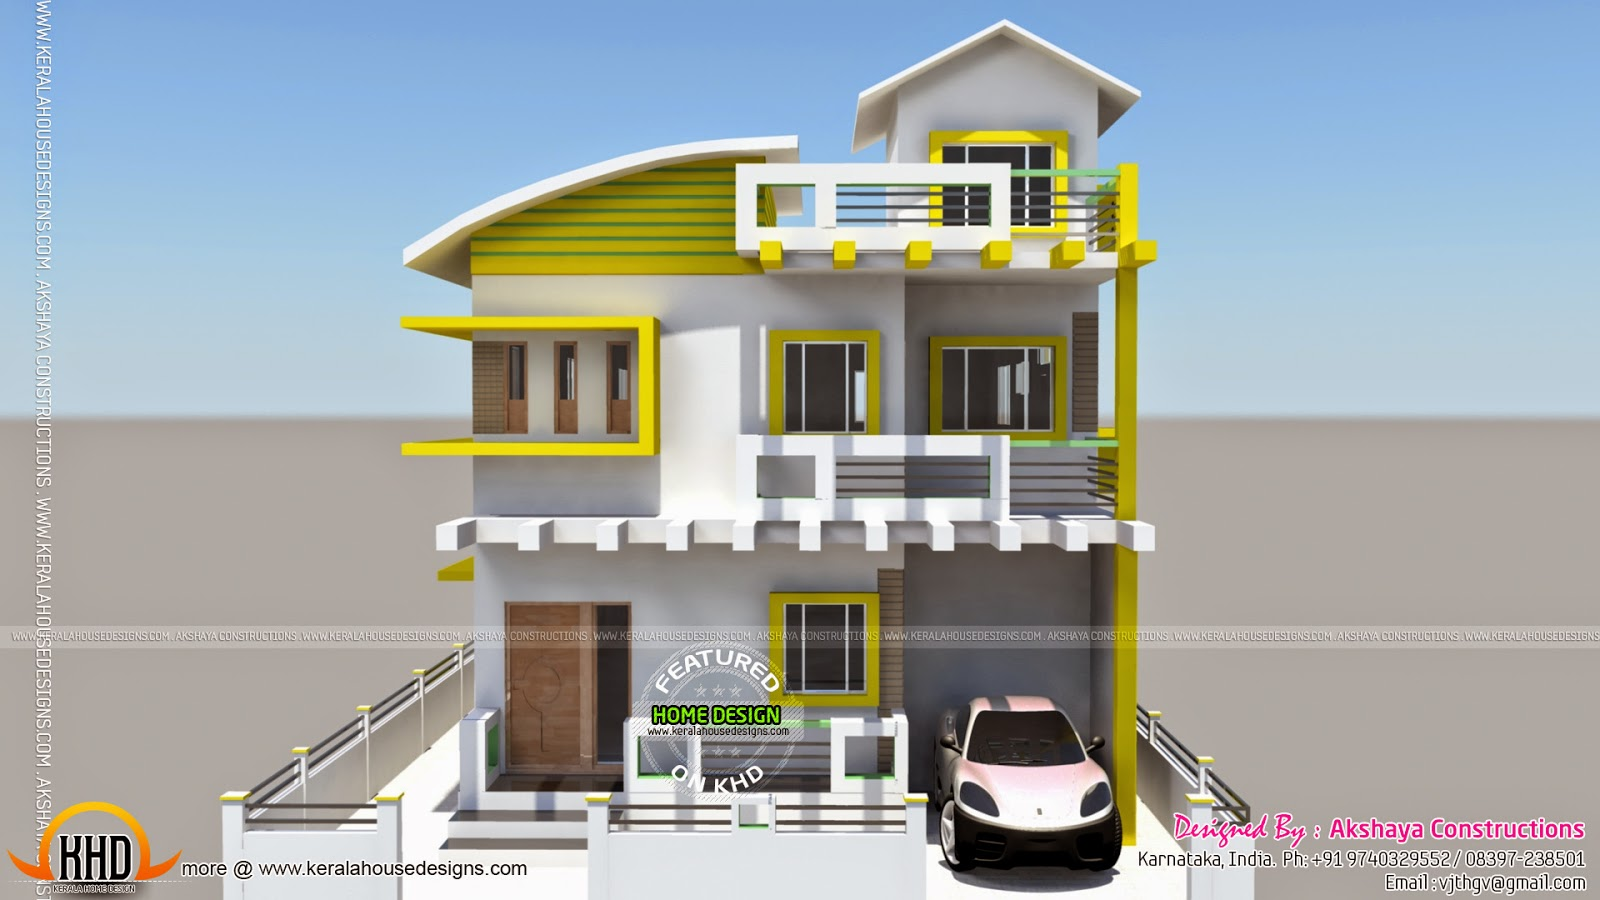 karnataka home design - Home Design Images